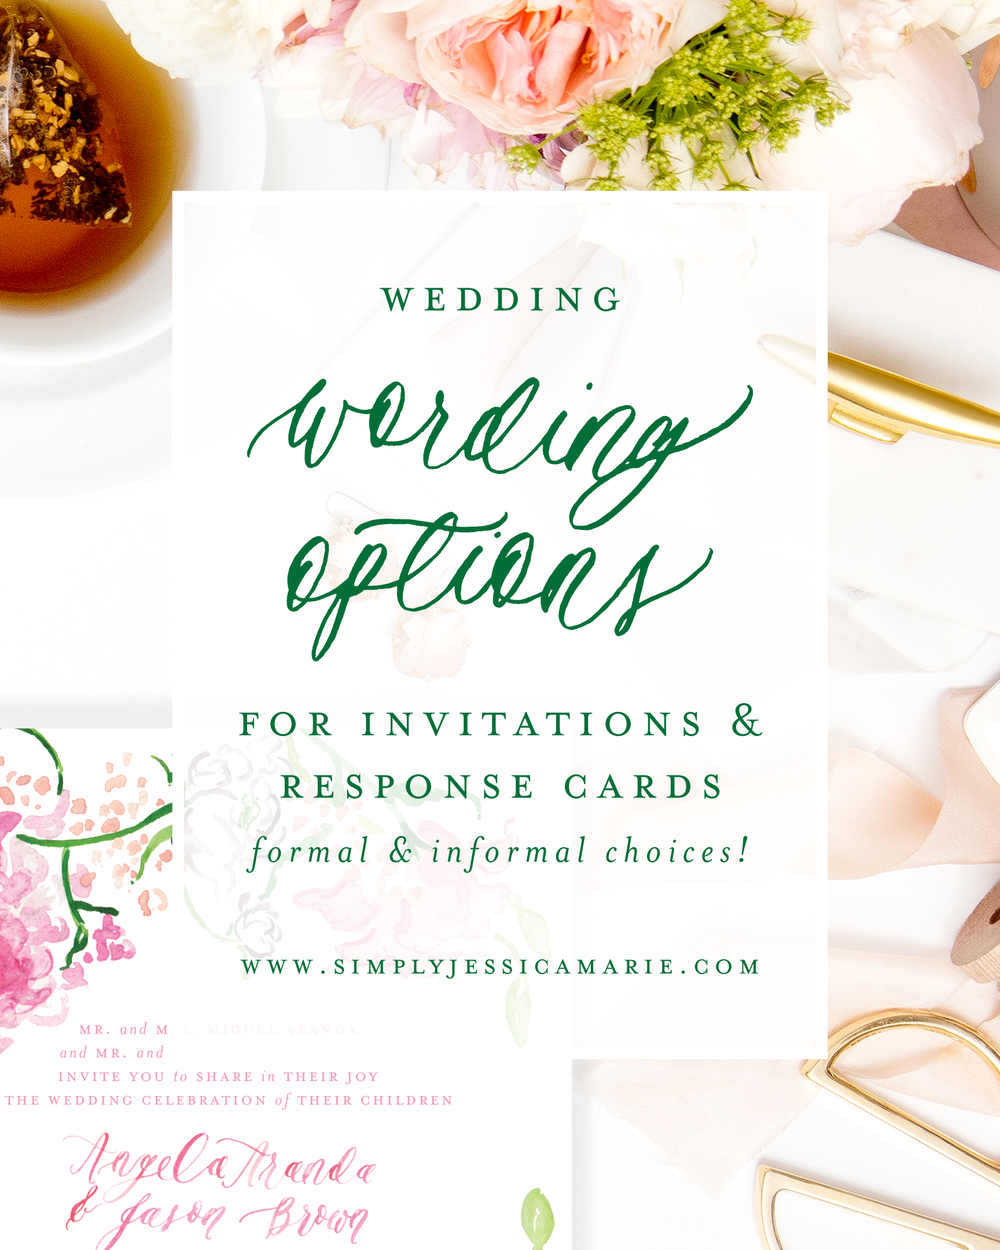 Wording Options for Wedding Invitations | Formal and informal wording options for your wedding invitations and response cards | Simply Jessica Marie | SC Stockshop Photo